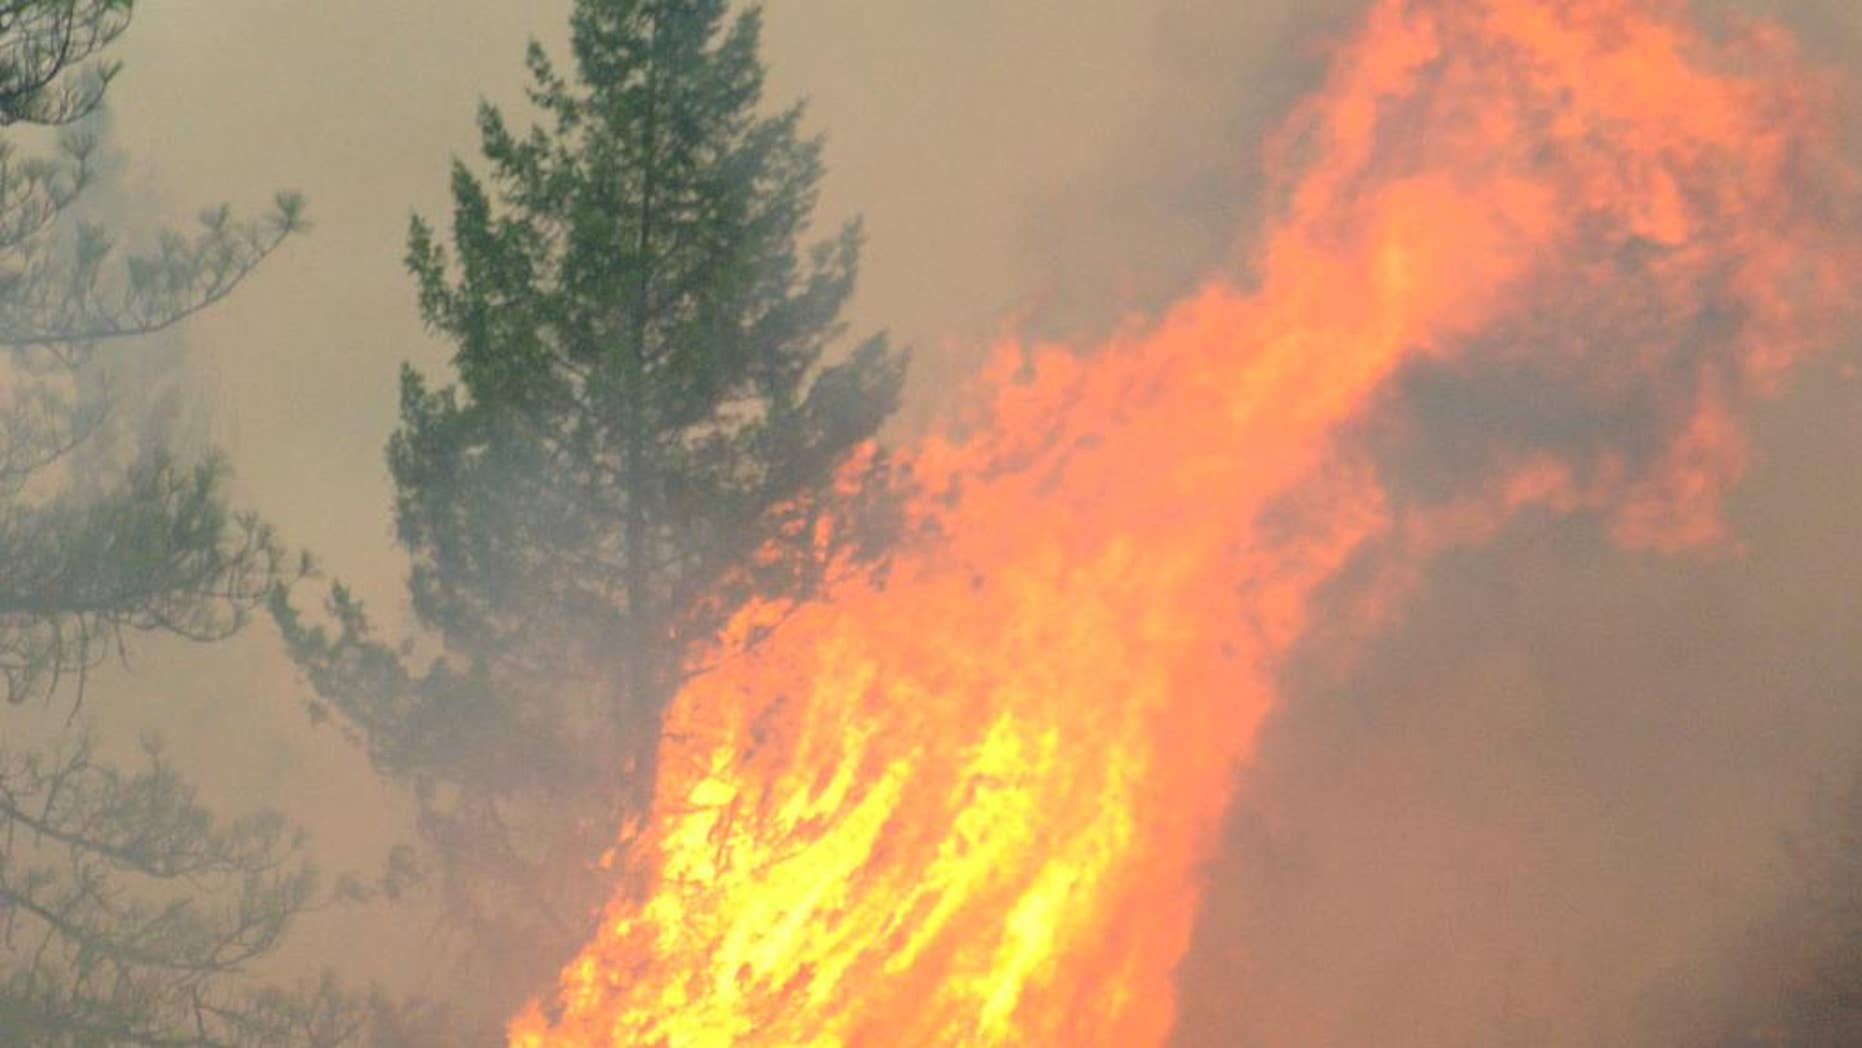 Fire consumes trees along the Clearwater River in north central Idaho on Saturday, Aug. 15, 2015, part of the Lawyer complex of wildfires caused by lightning earlier in the week. (Barry Kough/Lewiston Tribune via AP) MANDATORY CREDIT  MBO